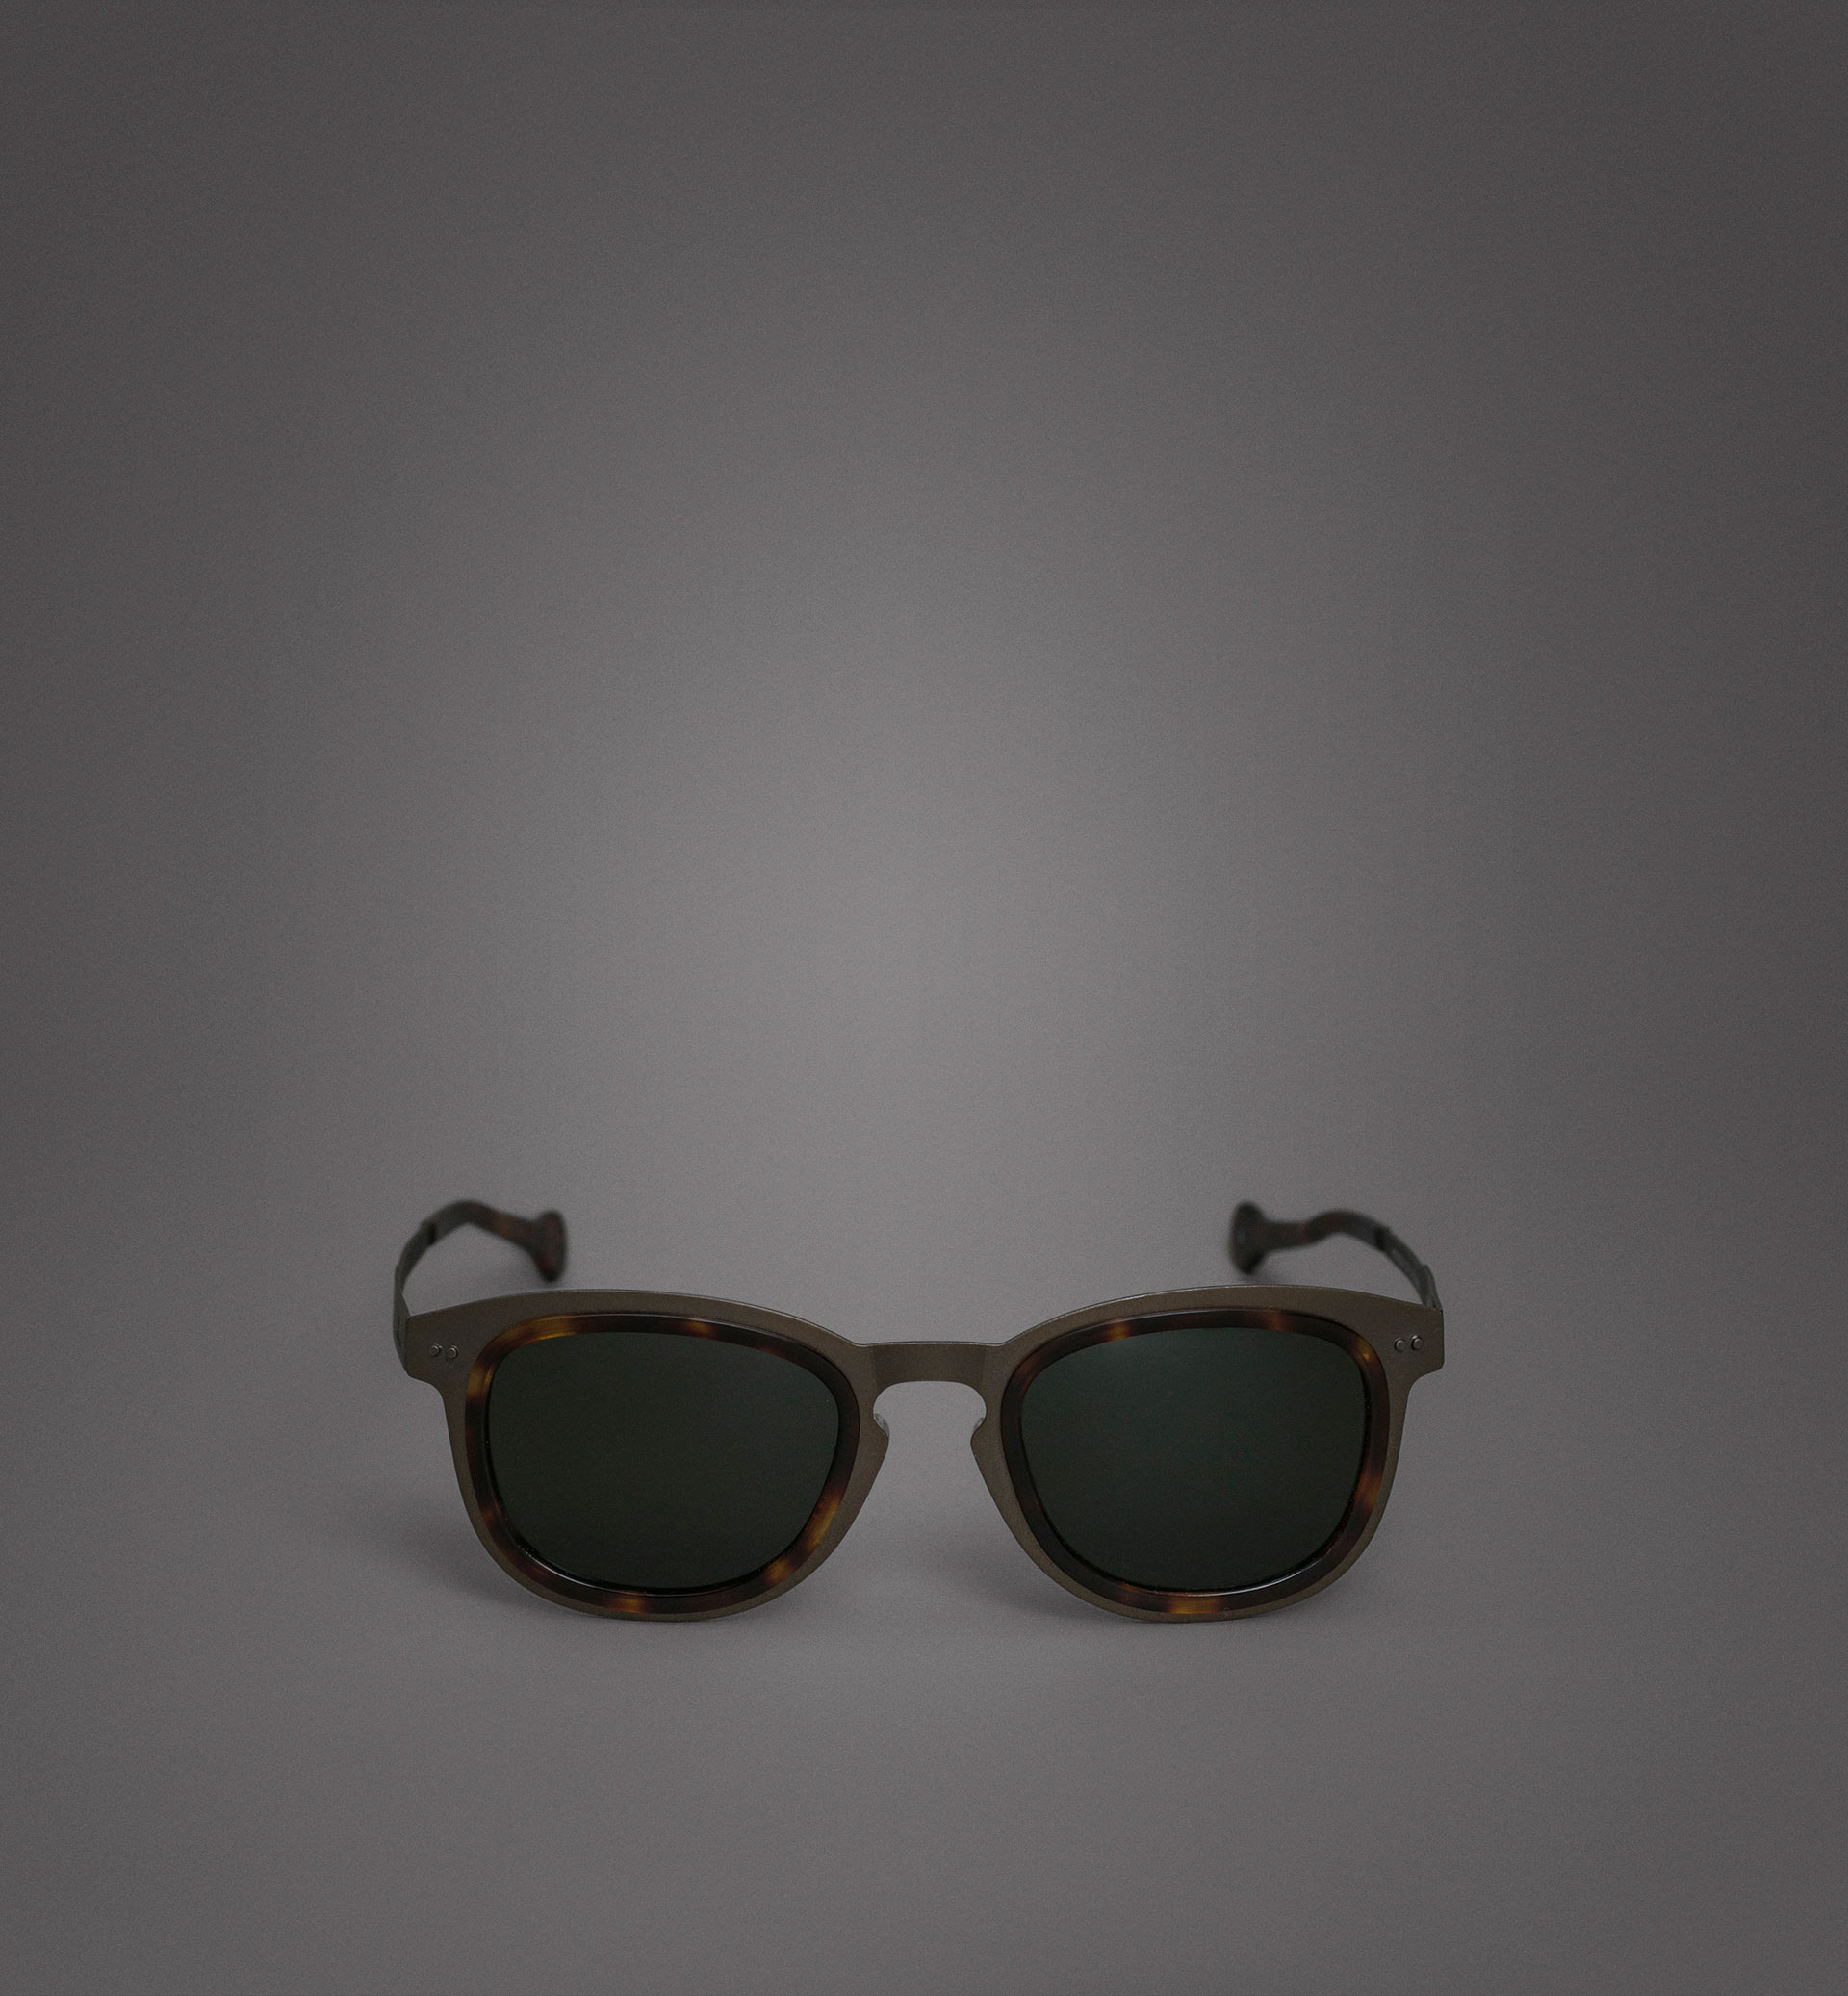 LIMITED EDITION TITANIUM AND TORTOISESHELL GLASSES